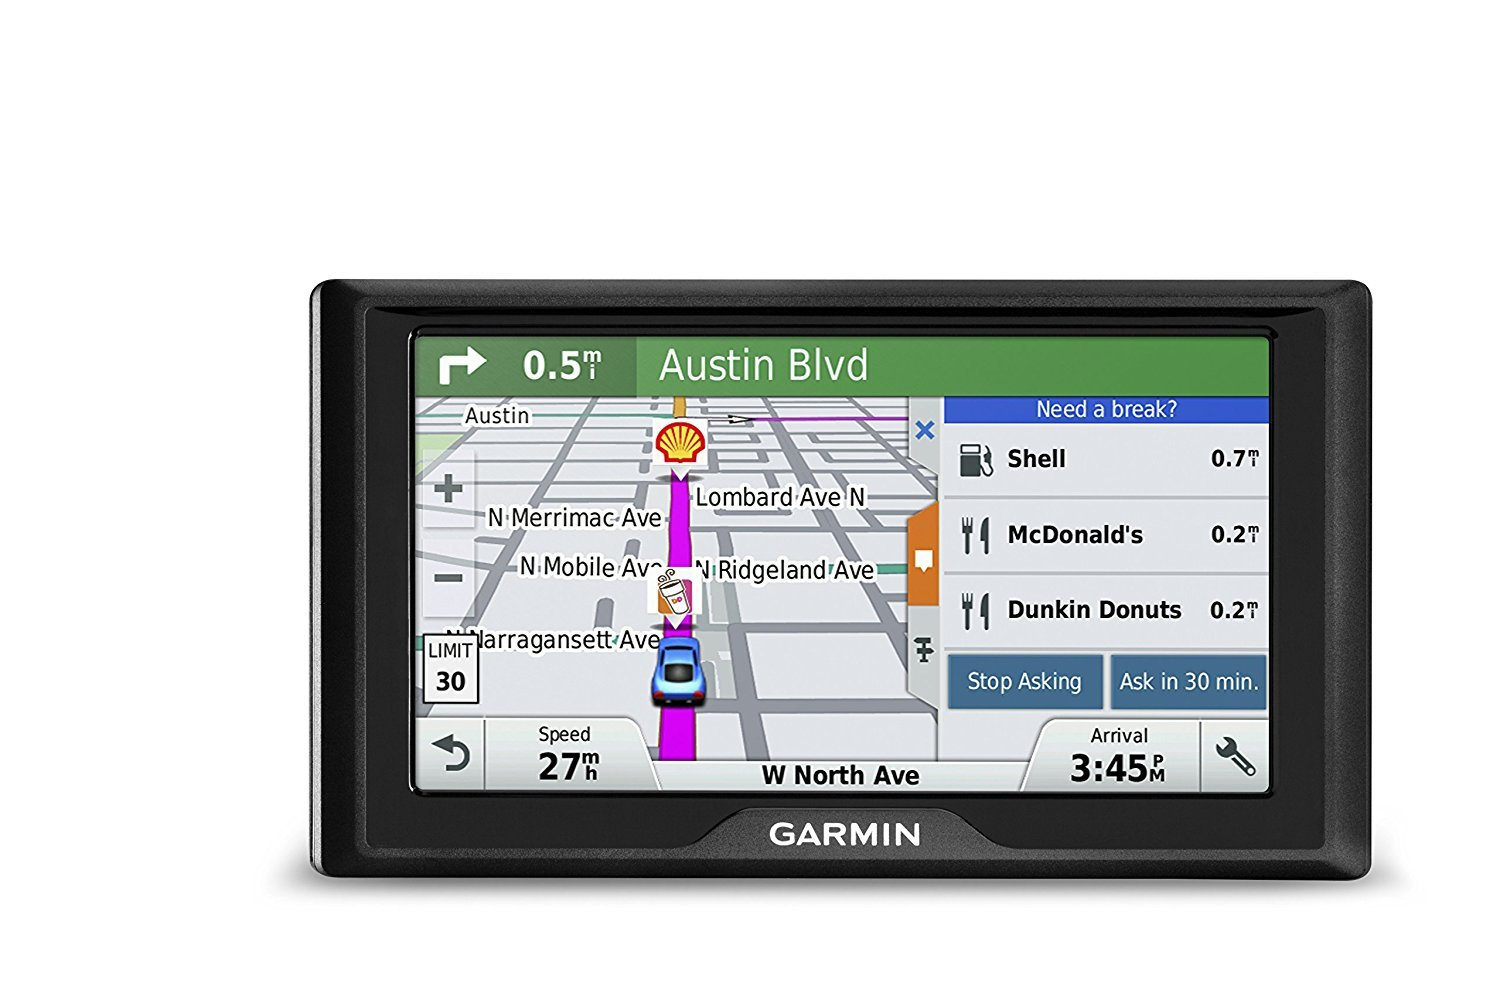 Garmin Drive 60 USA + CAN LM GPS Navigator System with Lifetime Maps, Spoken Turn-By-Turn Directions, Direct Access, Driver Alerts, and Foursquare Data (Certified Refurbished)